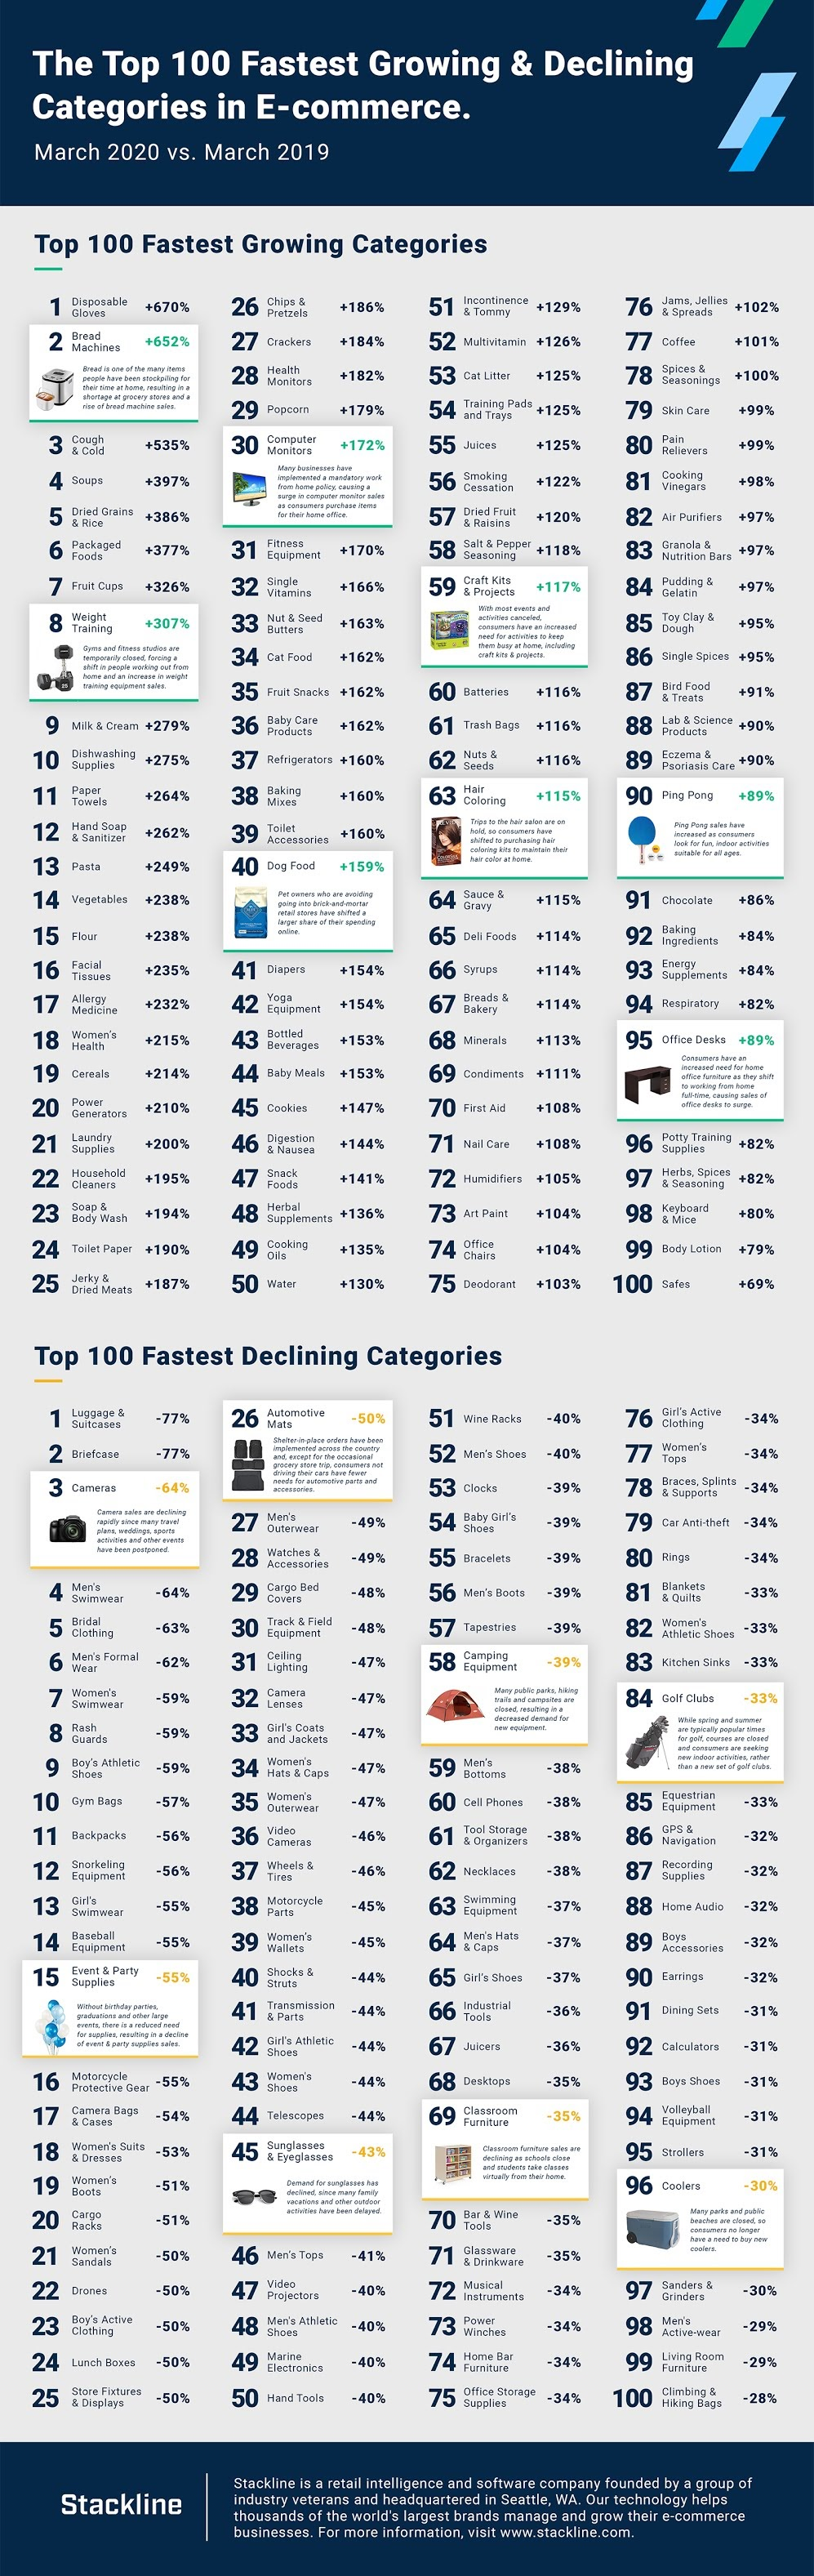 Top 100 Fastest Growing & Declining Categories in E-commerce #infographic